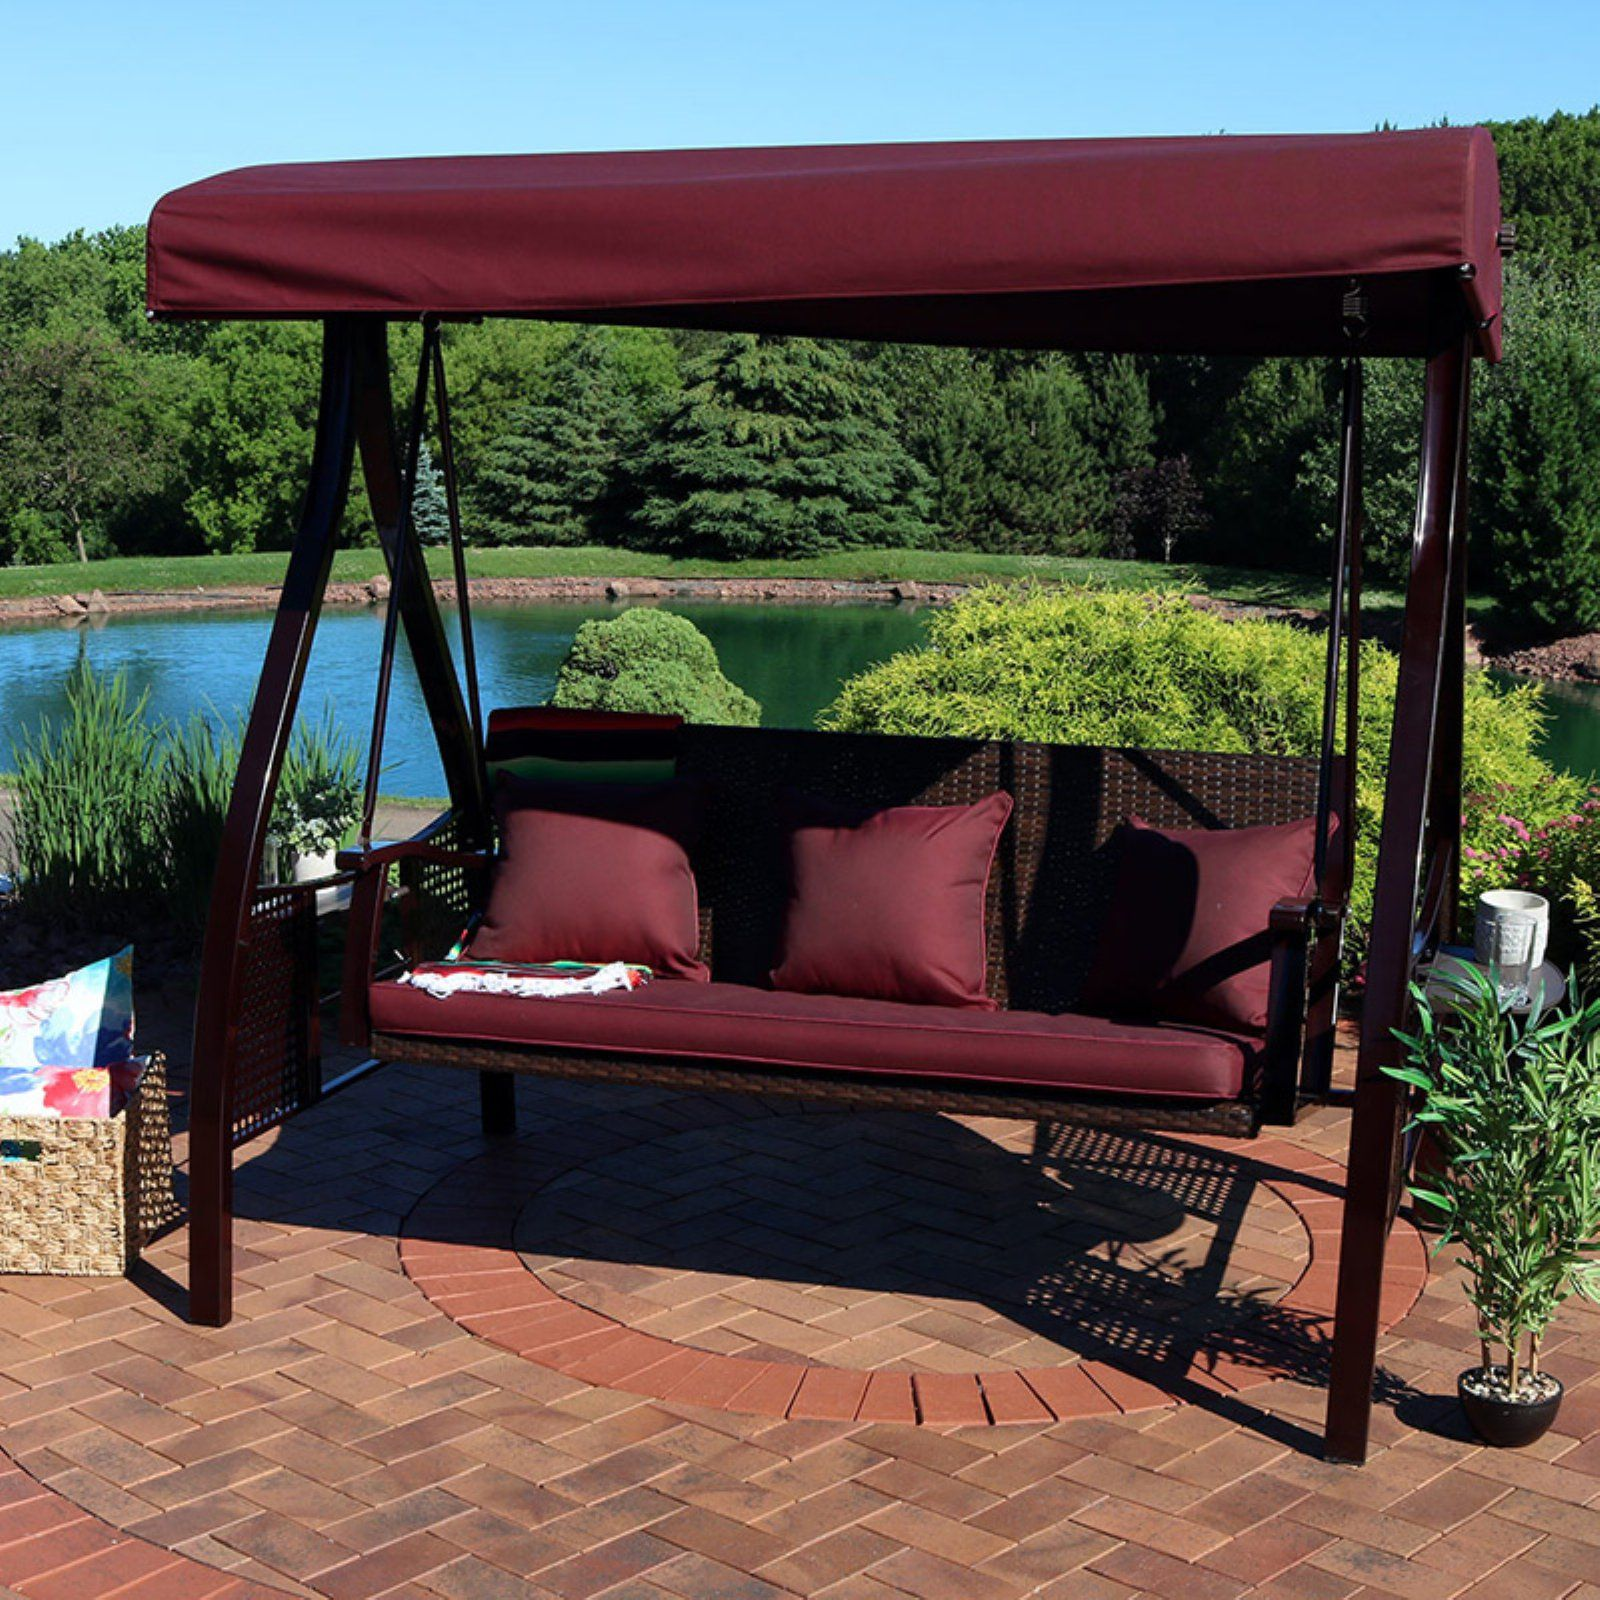 Sunnydaze Decor Deluxe Steel Frame Cushioned Canopy Swing With